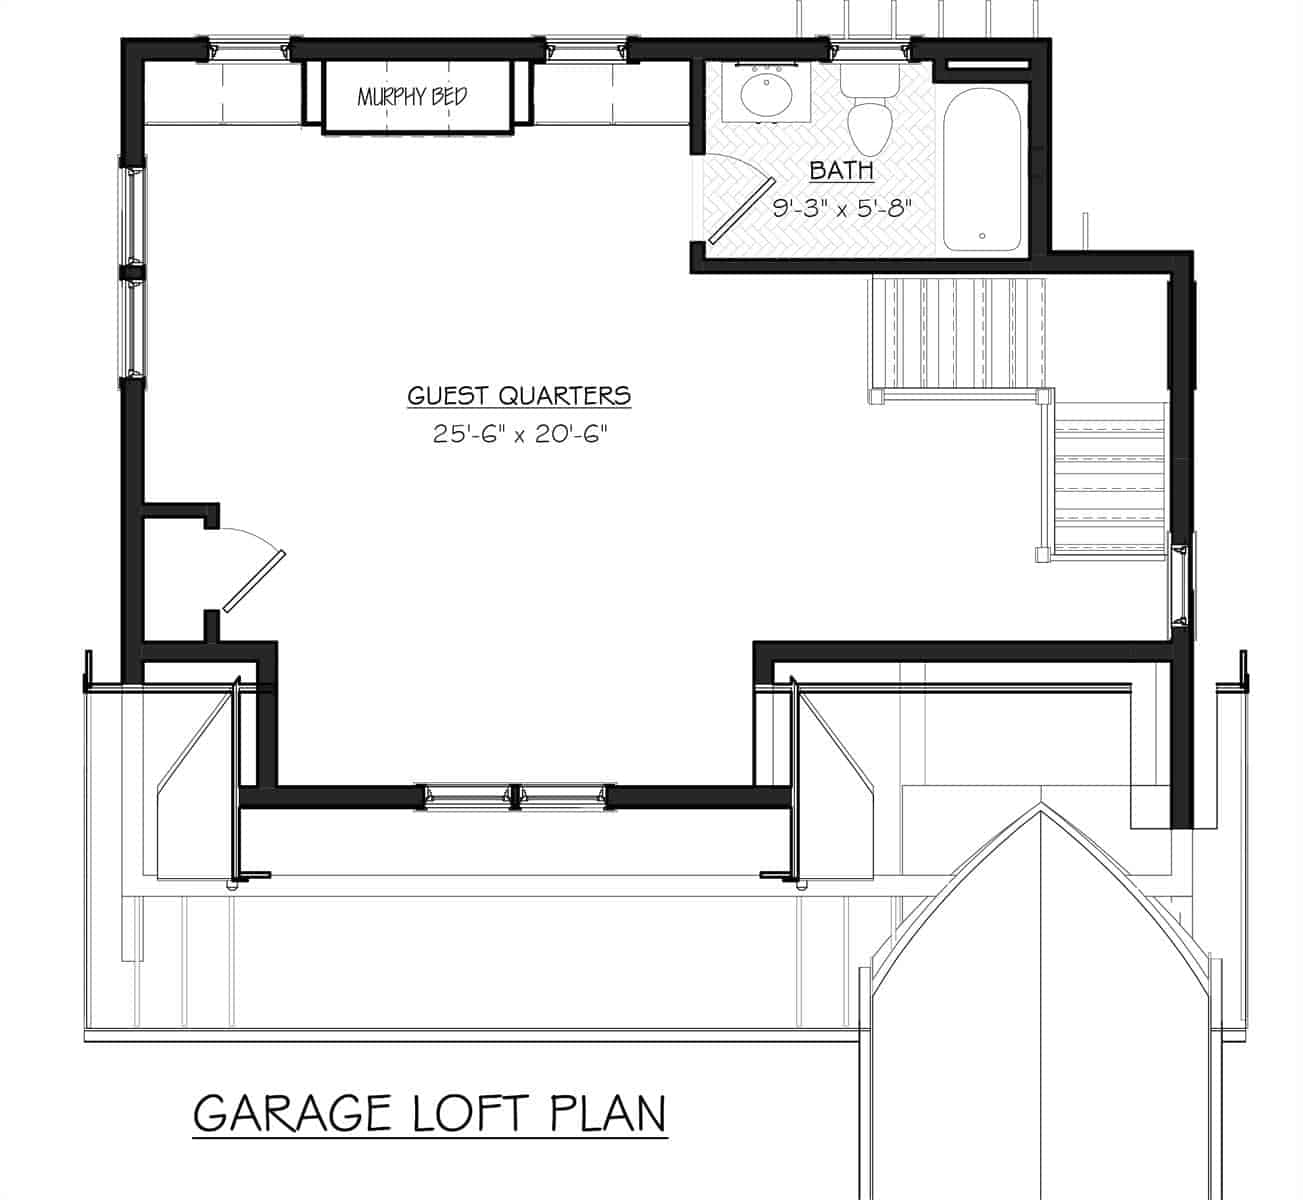 Garage loft floor plan with guest quarters complete with a bath and closet.